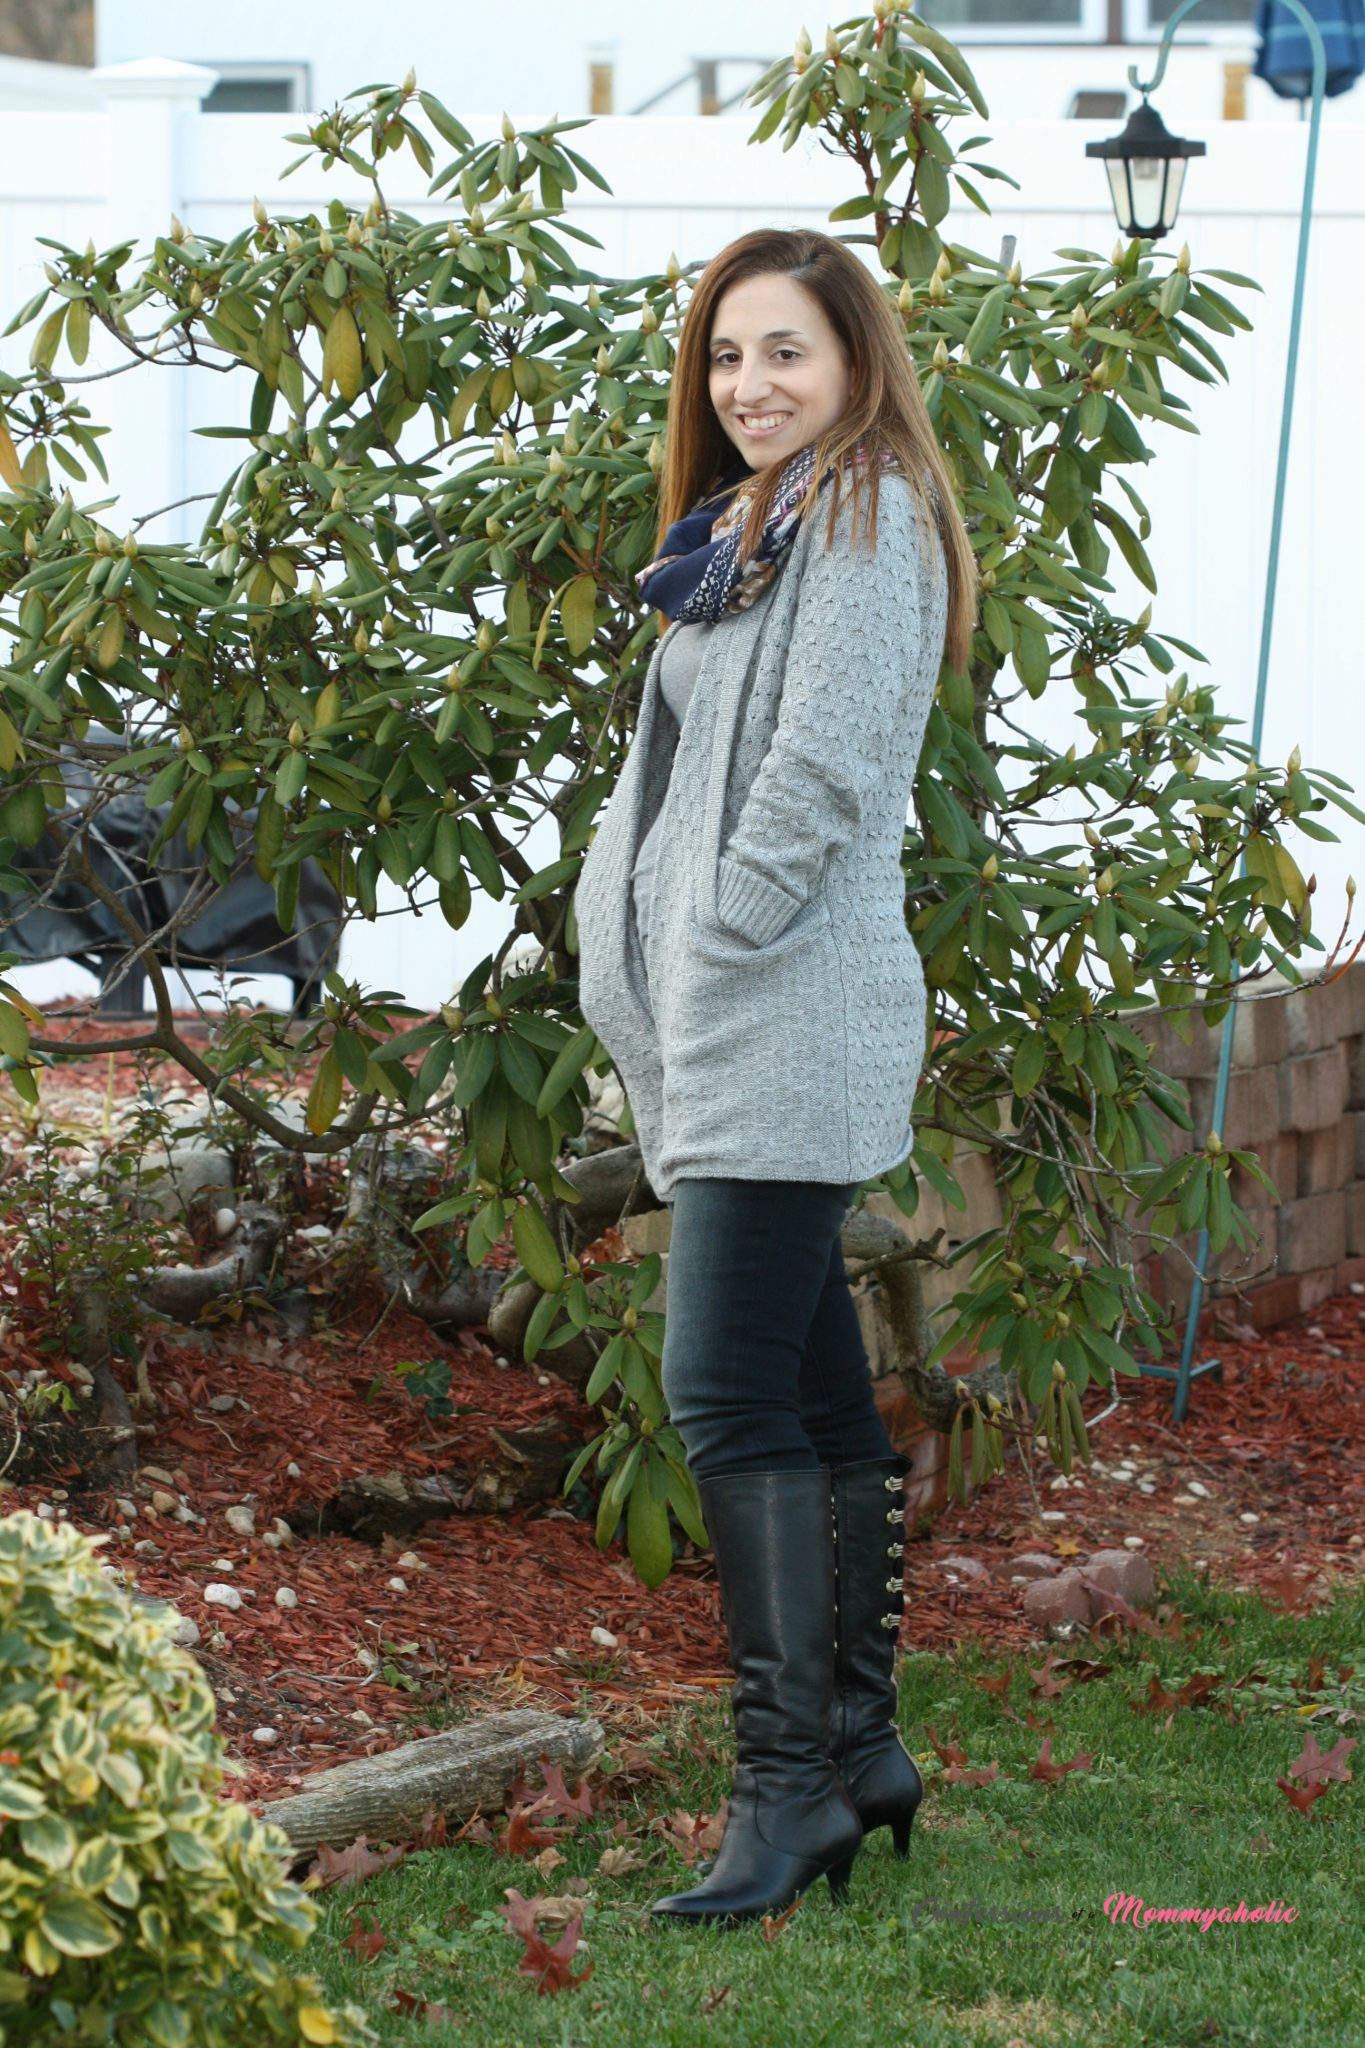 Lawley Cable Knit Open Cardigan, Nina Floral Print Infinity Scarf, Liza black Skinny Jean with Black Knee High Heeled Boots